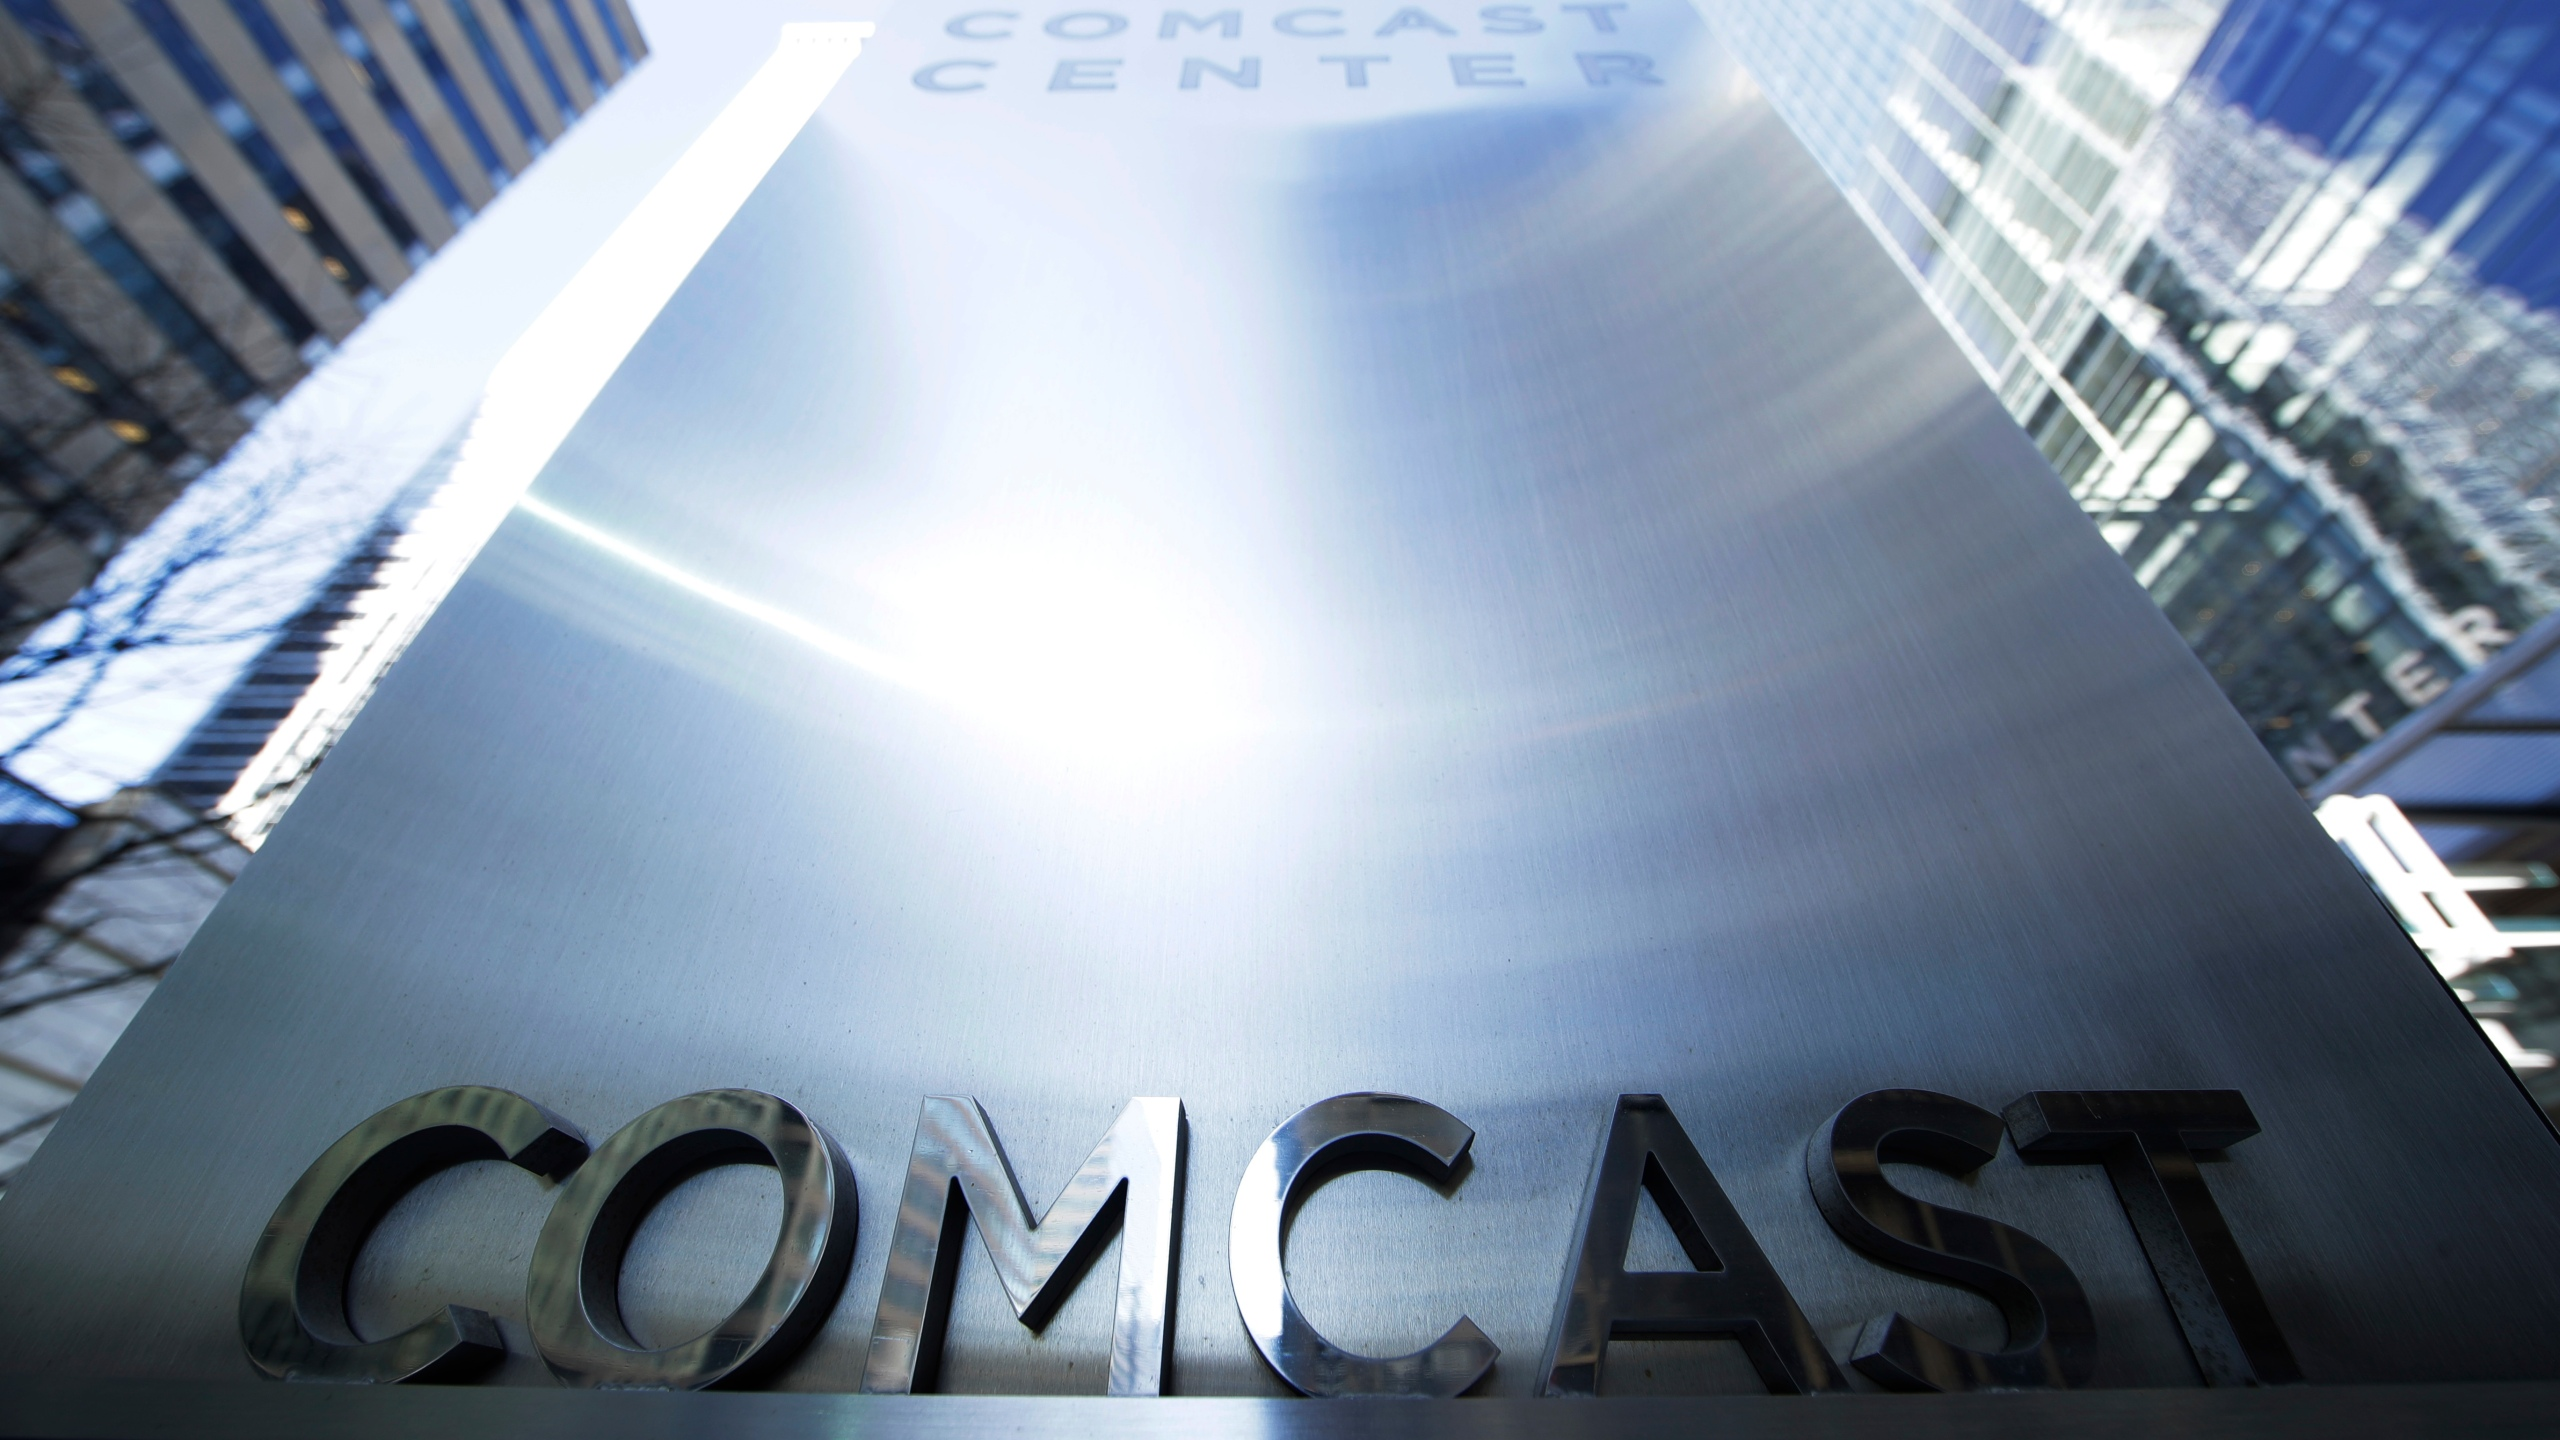 Comcast reporting nationwide outages